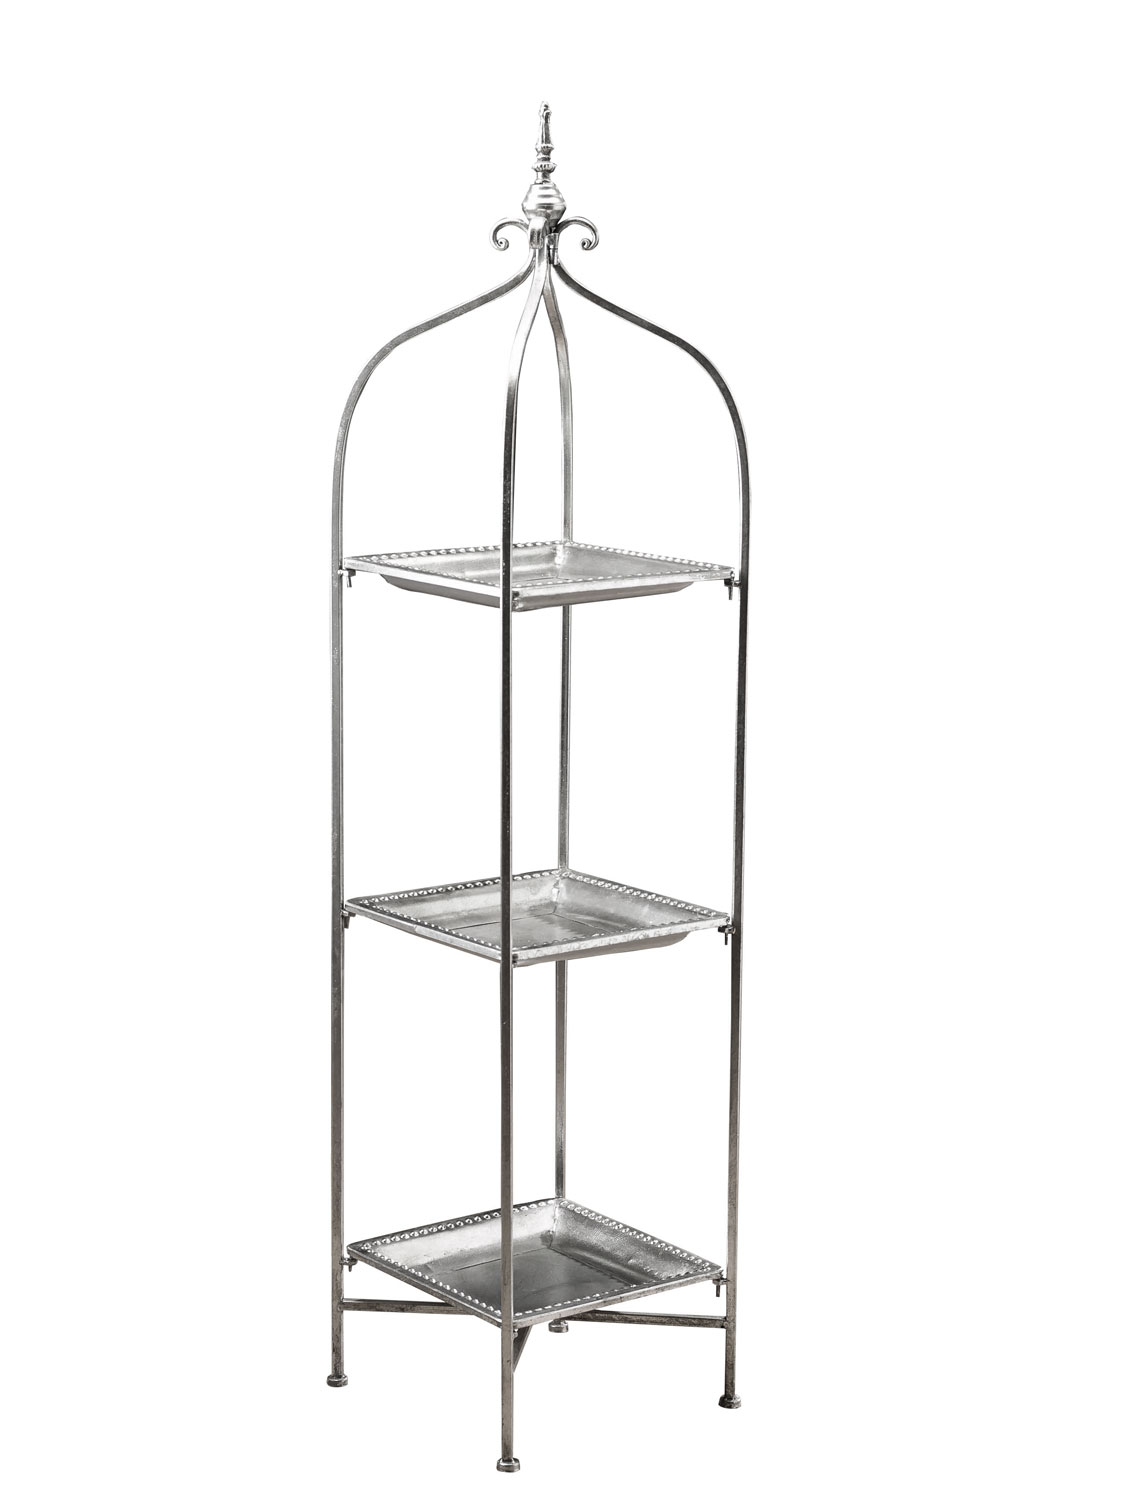 Orientalisches Regal Nostalgie Regal Etagere 128cm Blumenbank Antik Stil Metall